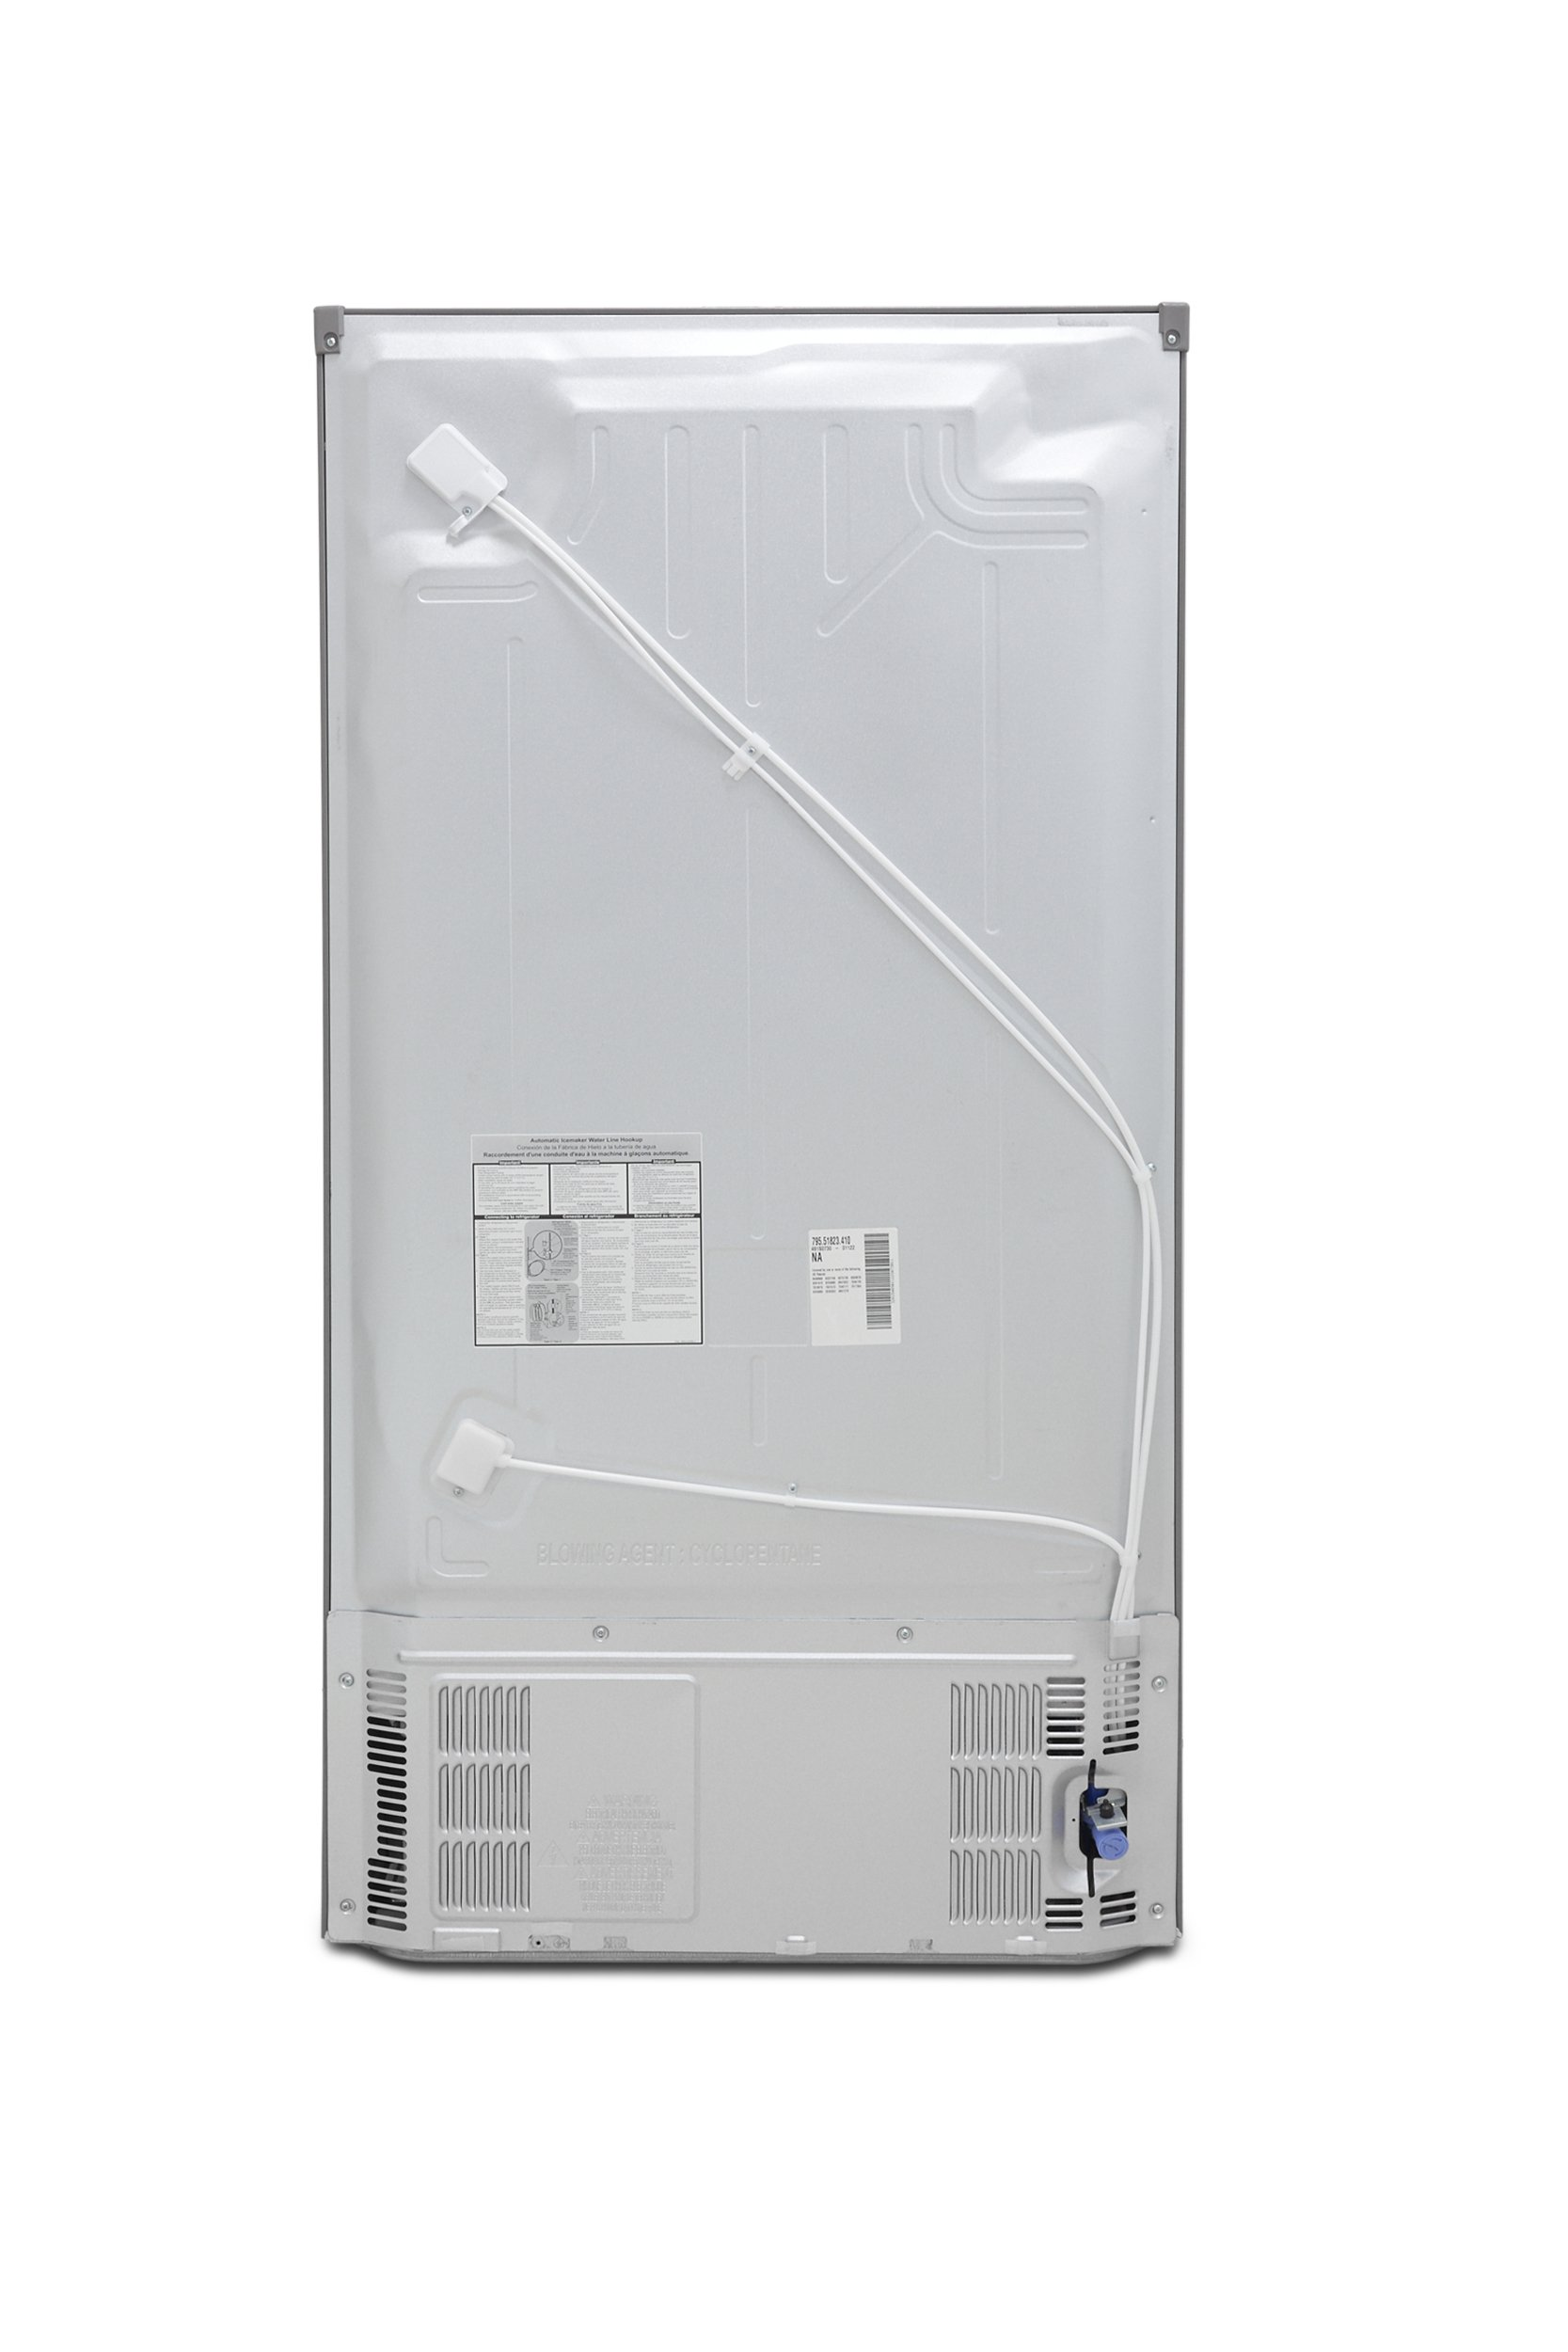 Kenmore Elite 51823 21.9 cu. ft. Side-by-Side Refrigerator in Stainless Steel, includes delivery and hookup (Available in select cities only) by Kenmore (Image #10)